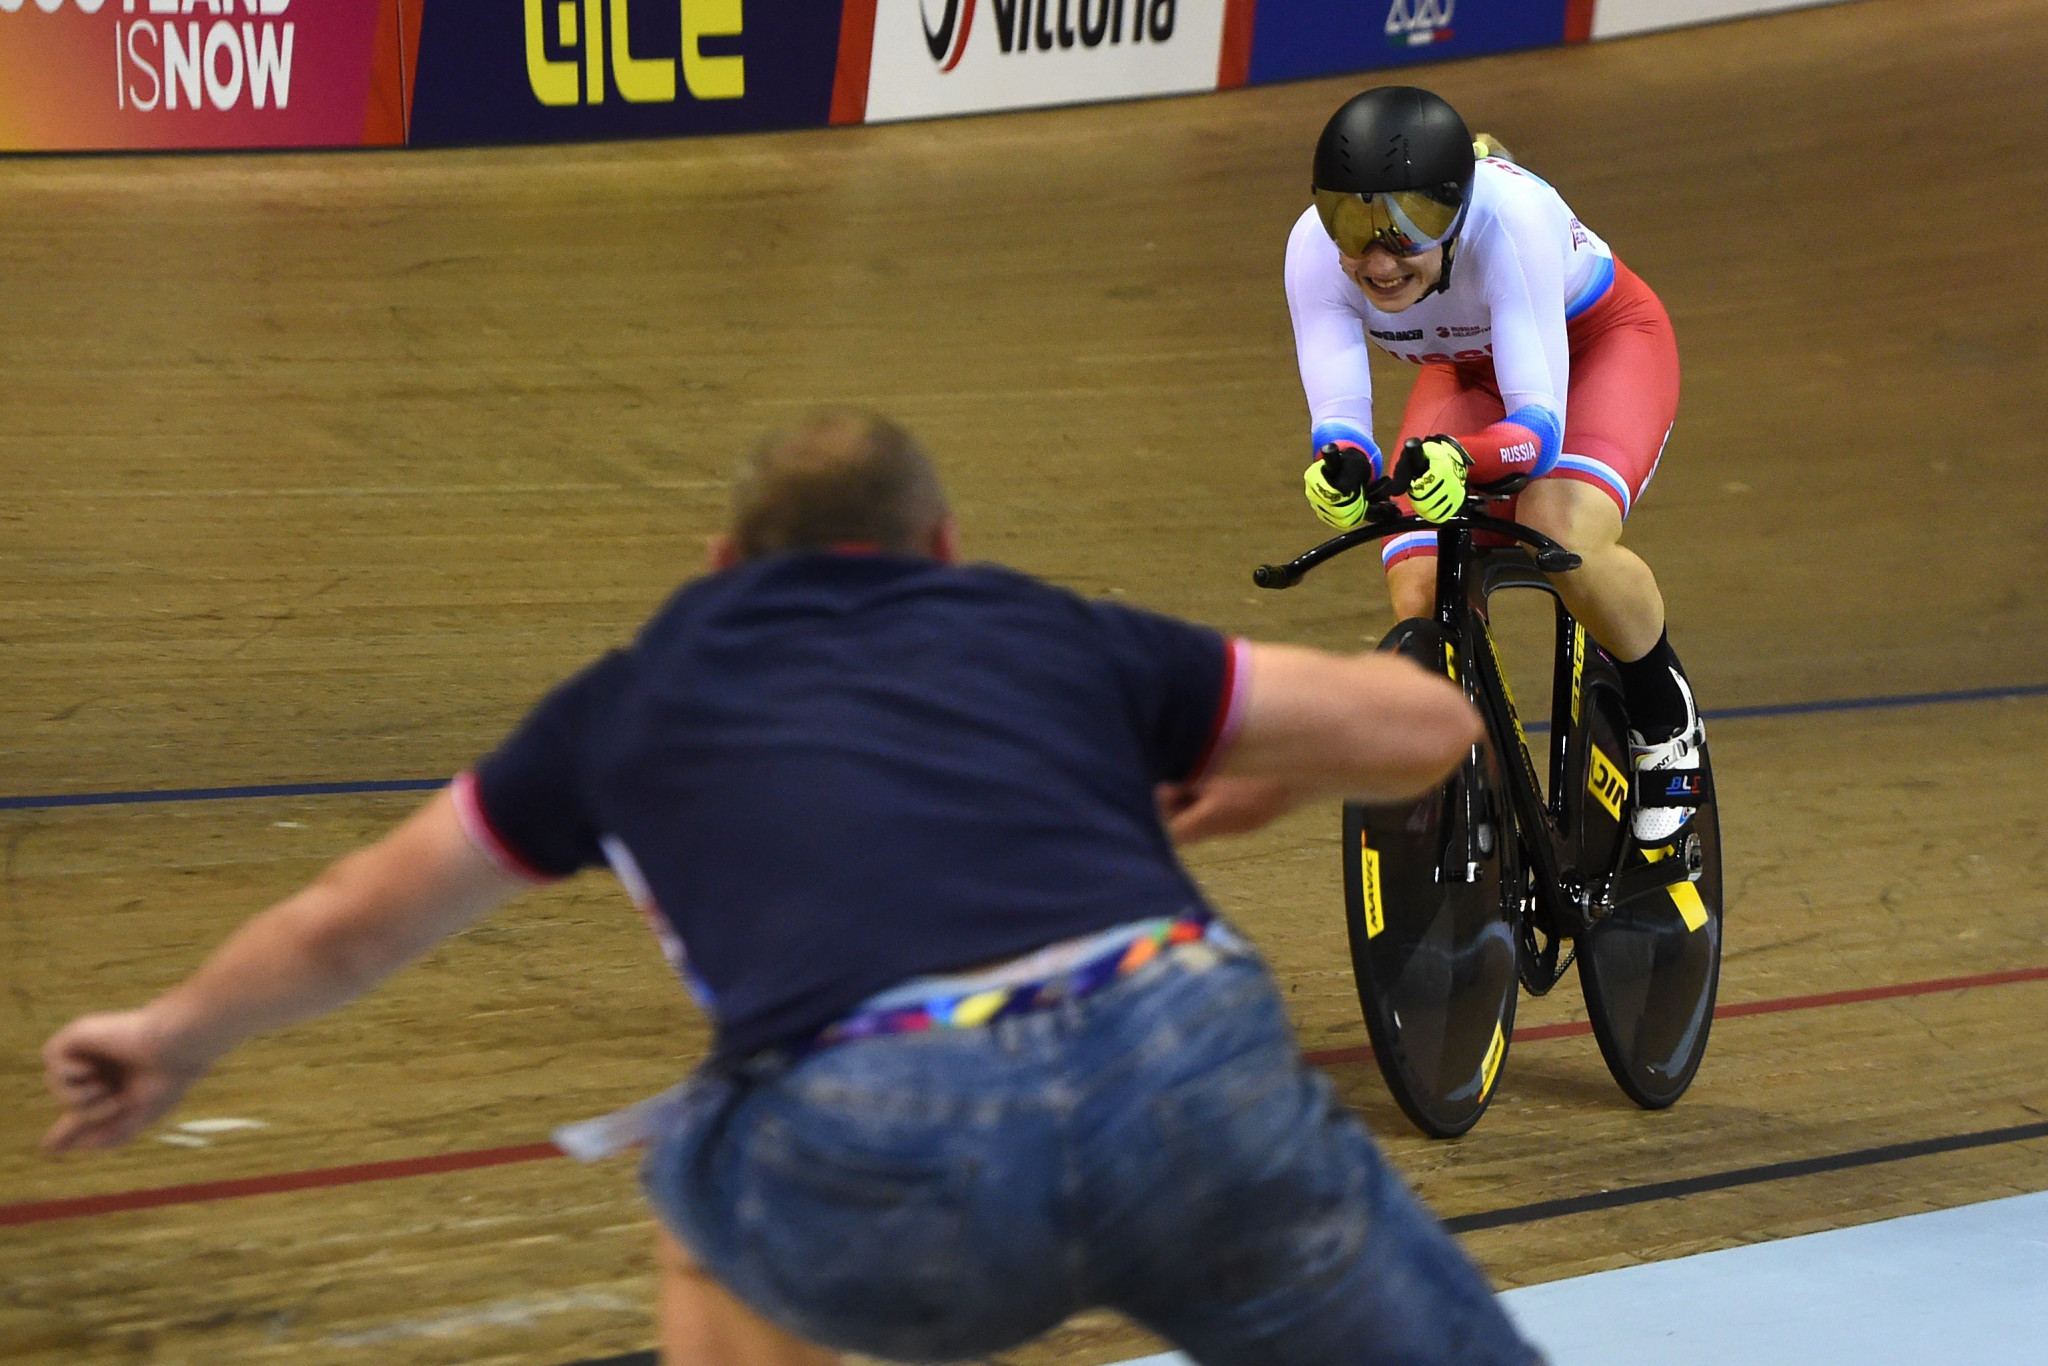 Daria Shmeleva completed a hat-trick of sprint titles by winning the 500m time trial ©Getty Images